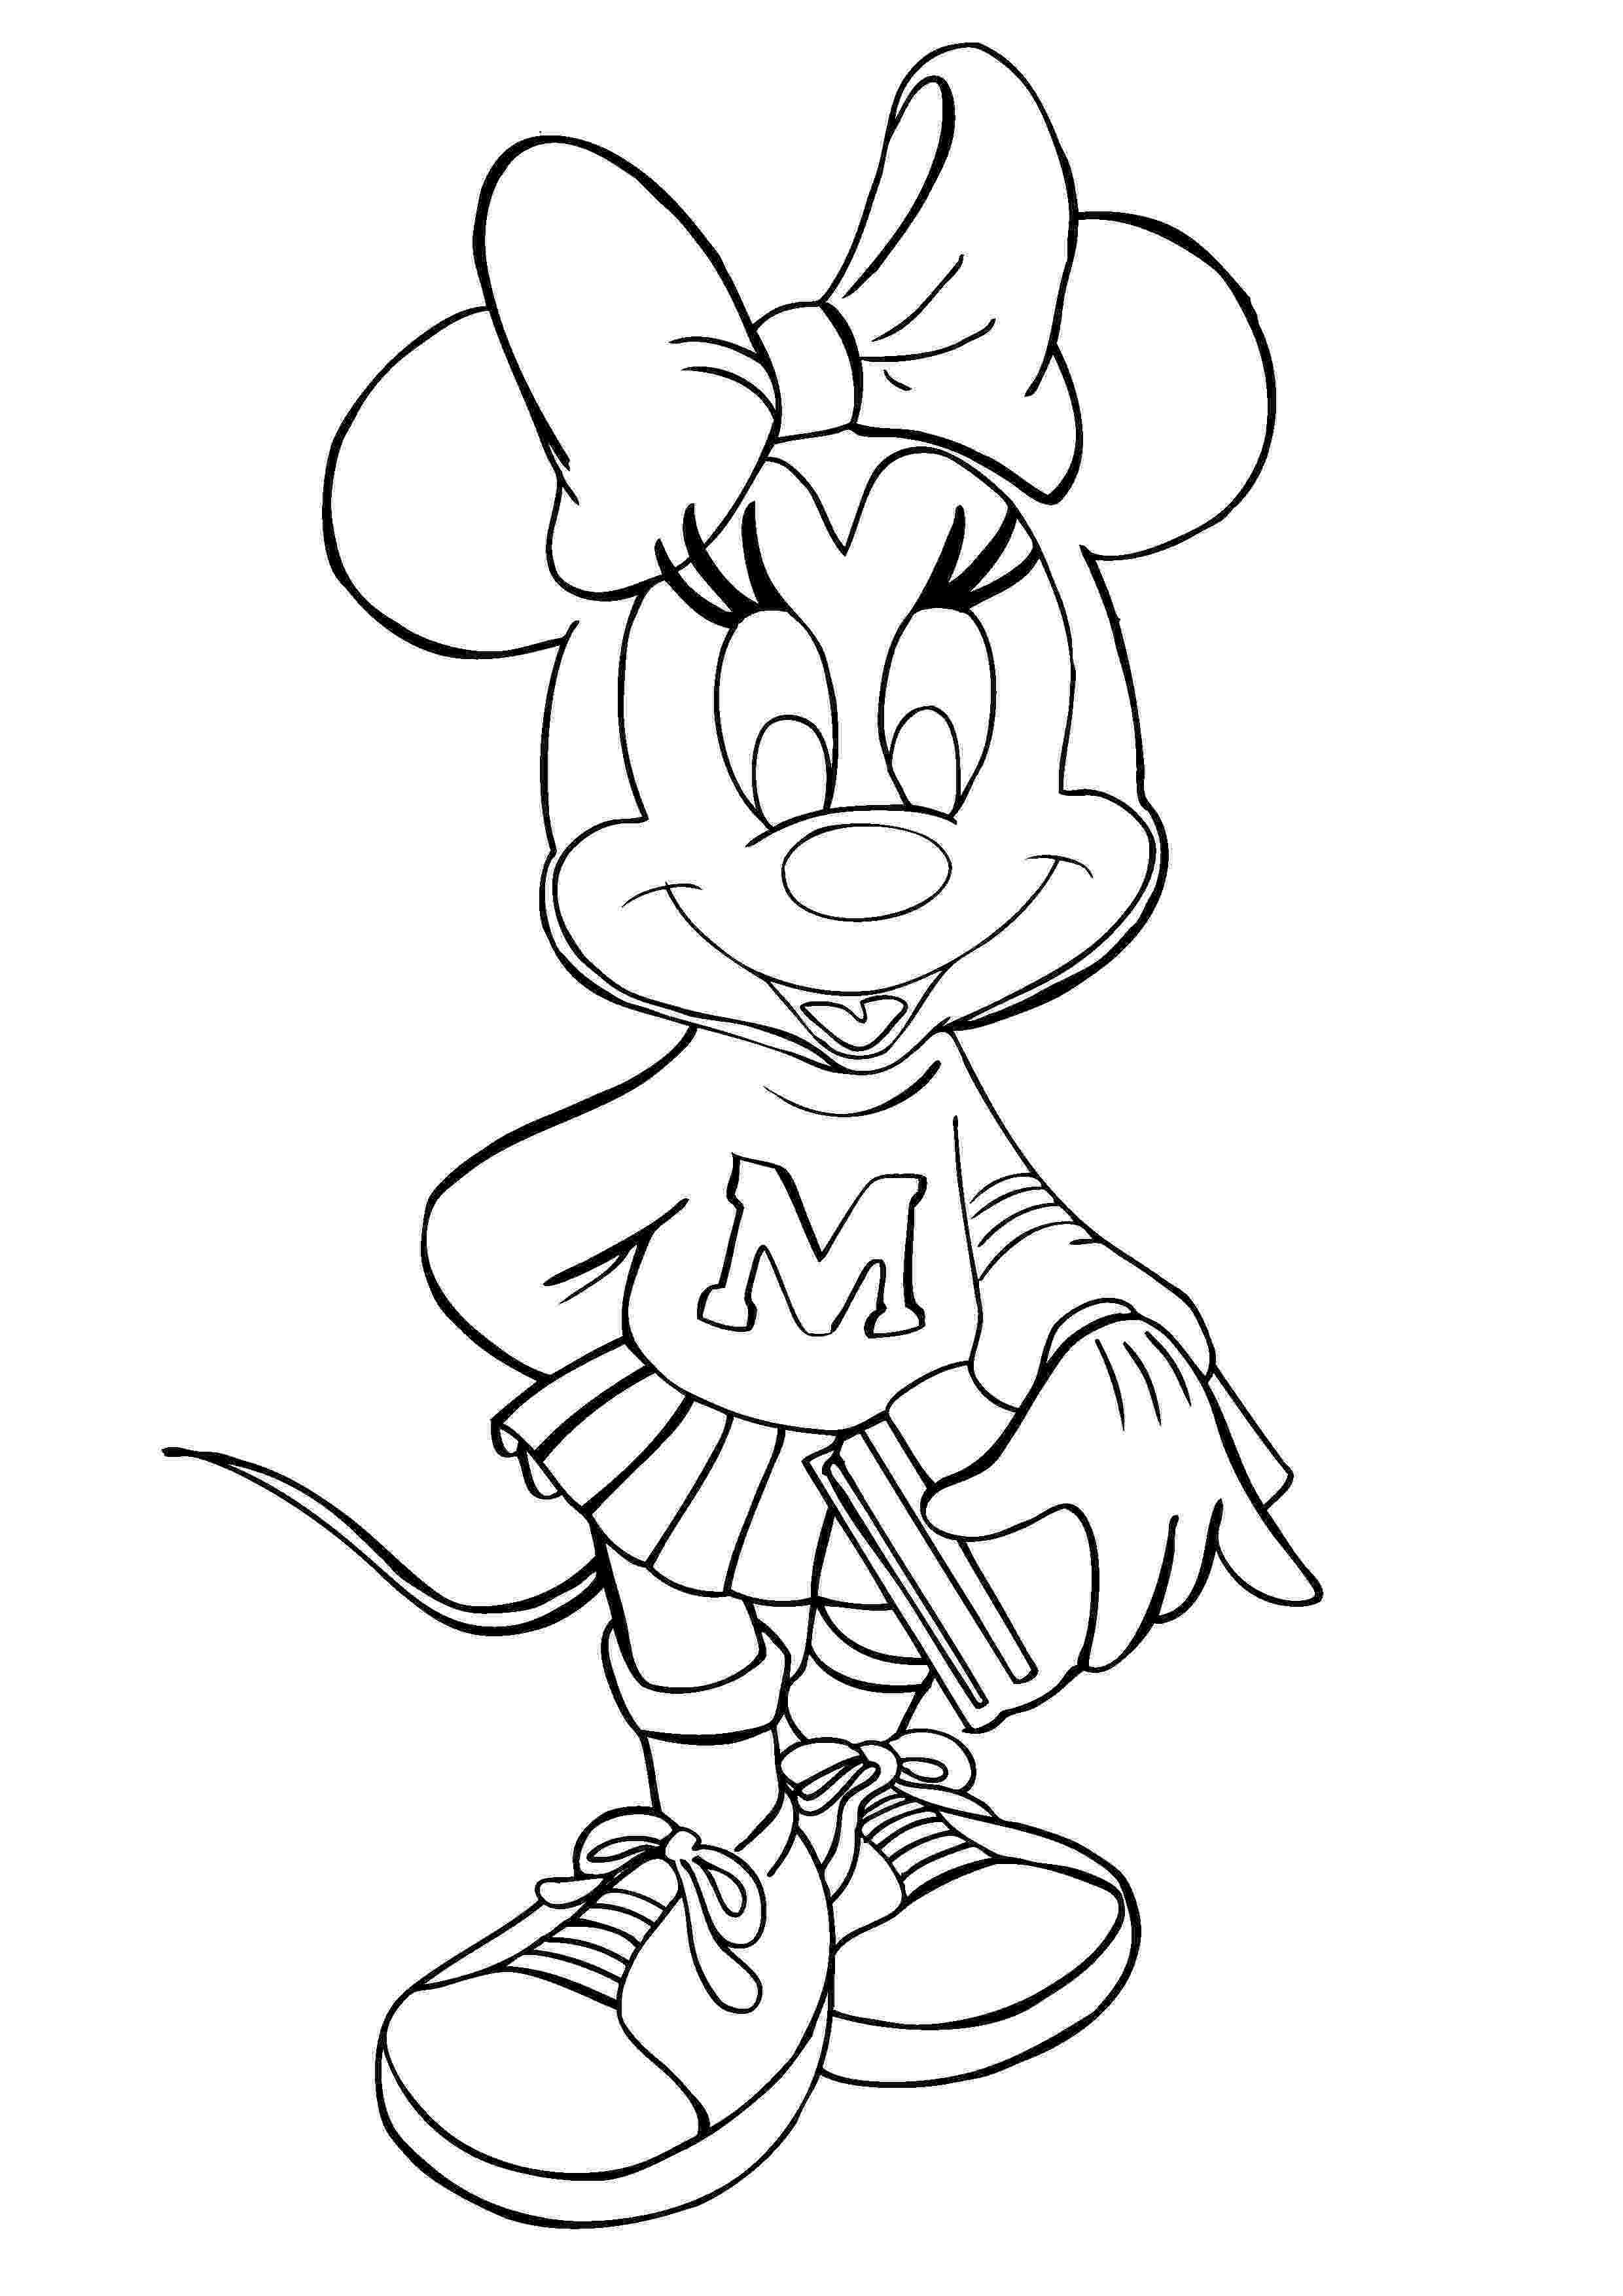 minnie mouse color page minnie mouse coloring pages disney39s world of wonders page mouse minnie color